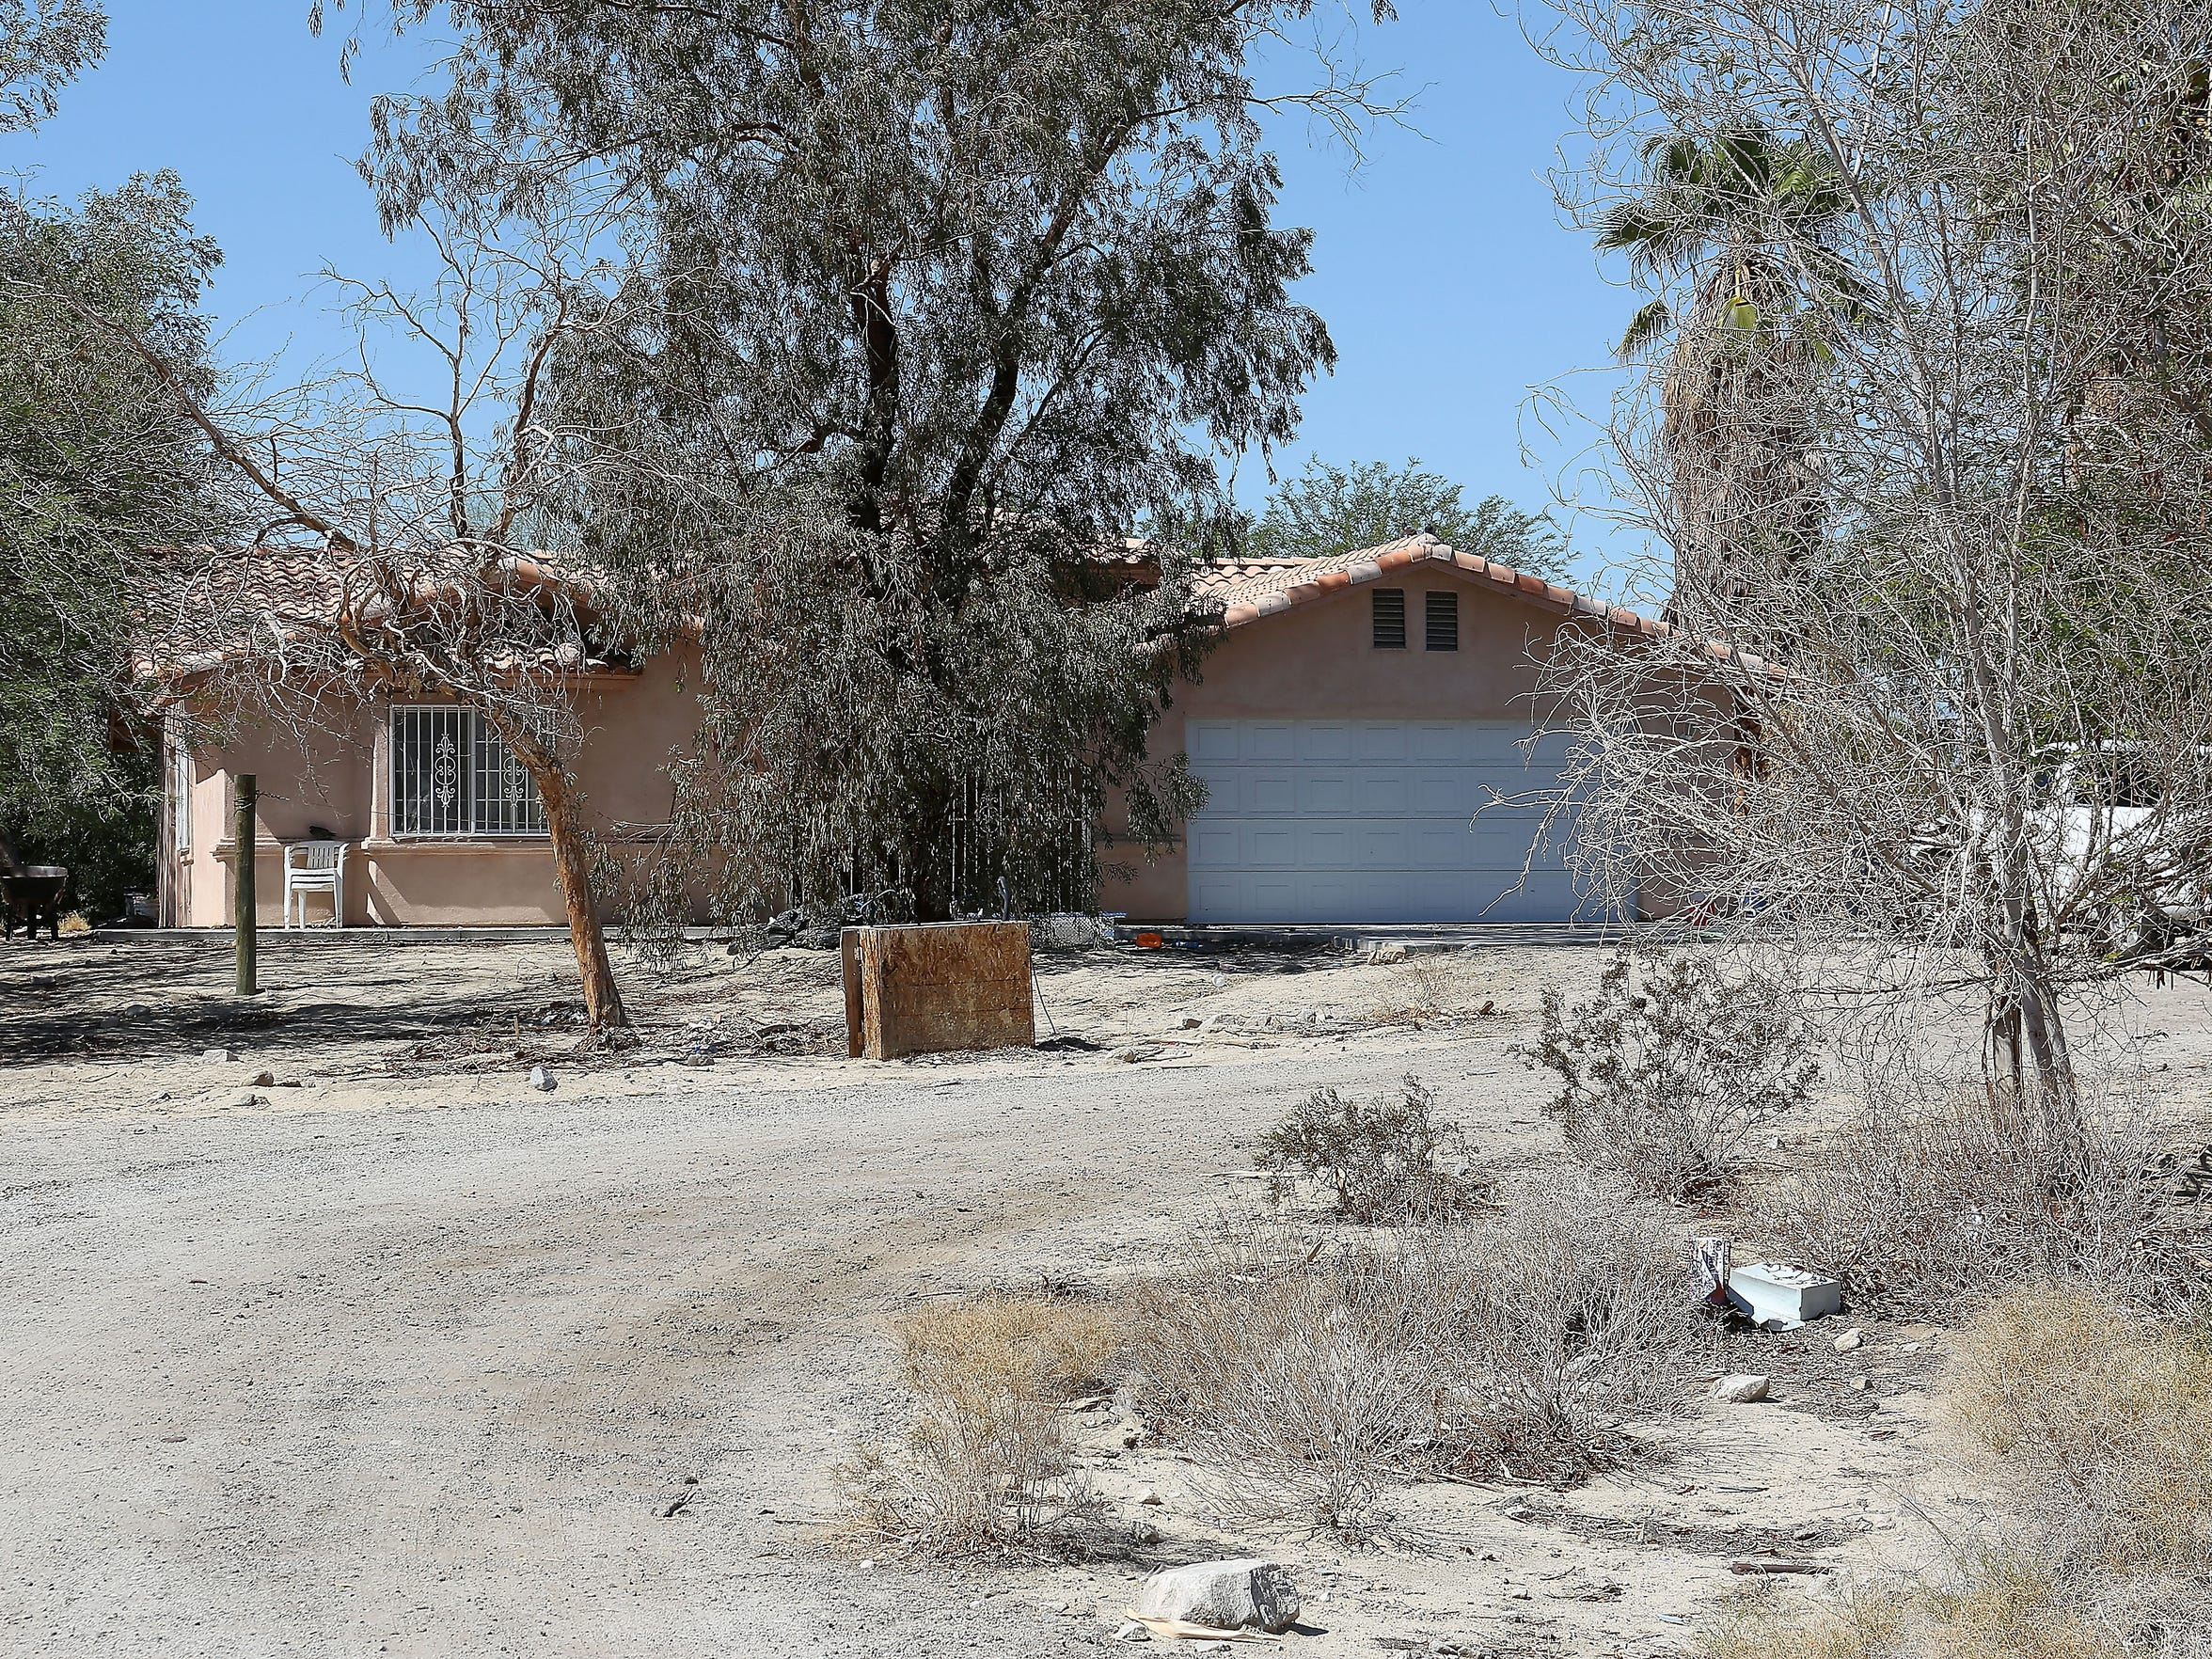 This unassuming home in a remote area of the Indio